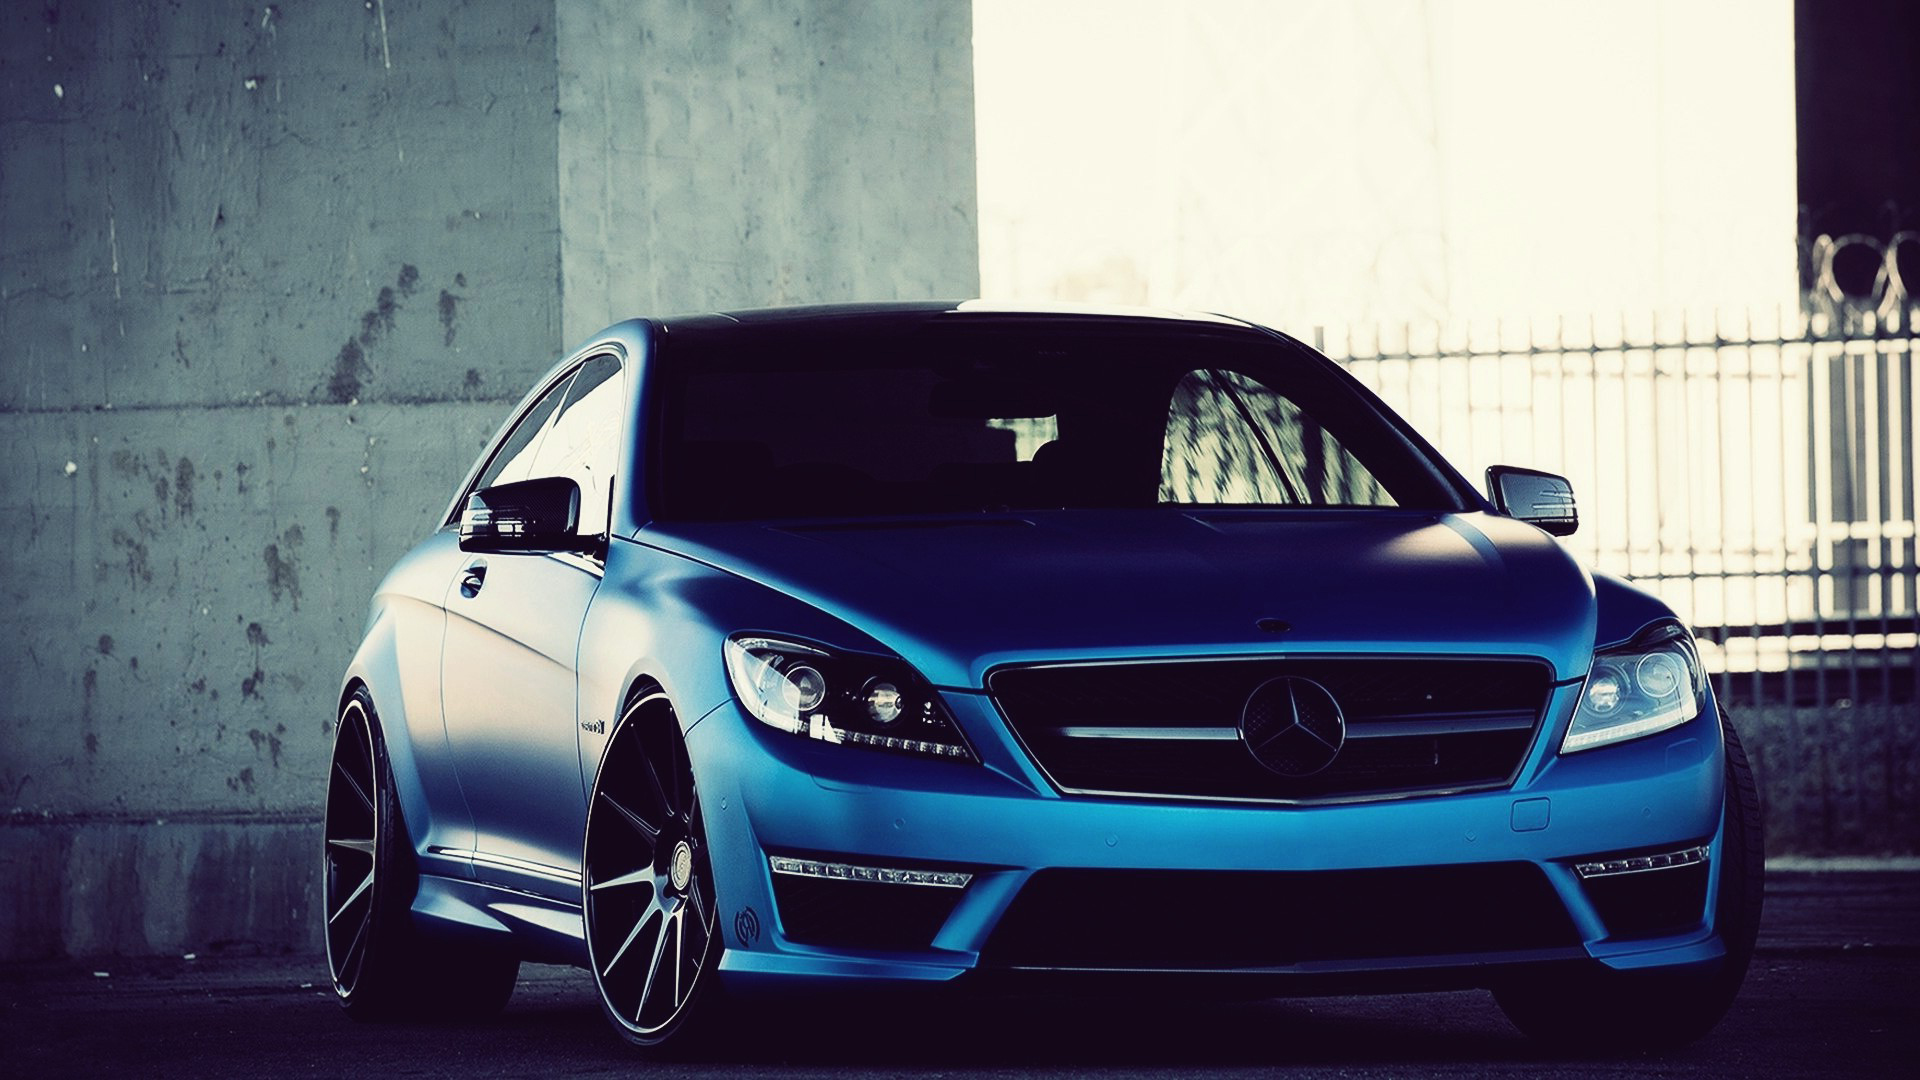 free download blue mercedes car wallpaper blue mercedes car 1920x1080